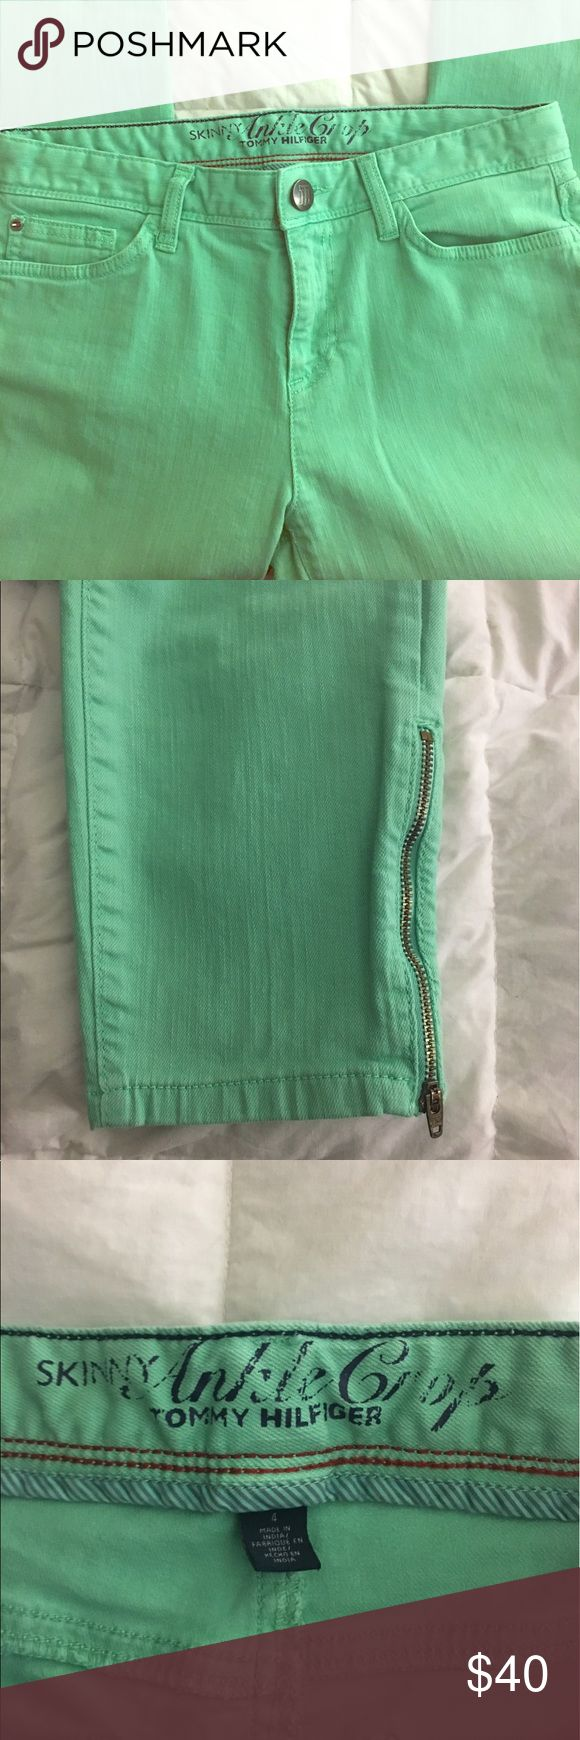 Tommy Hilfiger Mint Capris Brand new and never worn. Excellent condition. These are super cute capris and have zipper detailing at the bottom of the pant legs Tommy Hilfiger Pants Capris